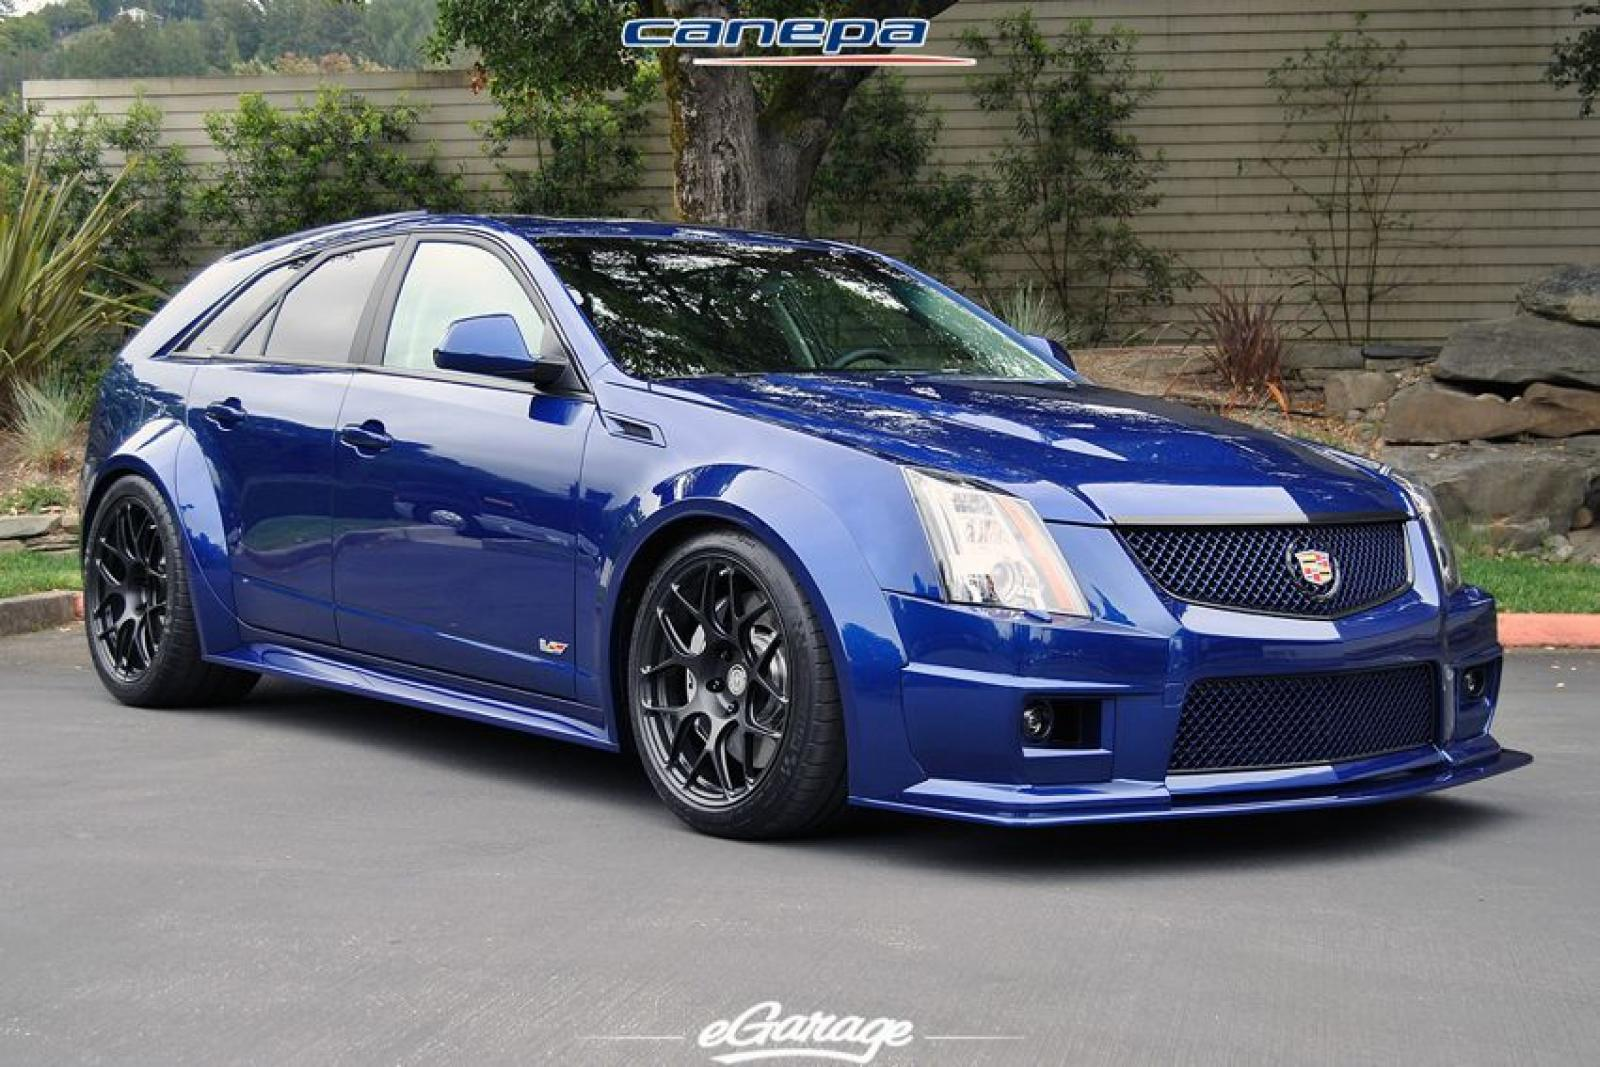 2013 cadillac cts v wagon information and photos zombiedrive. Black Bedroom Furniture Sets. Home Design Ideas